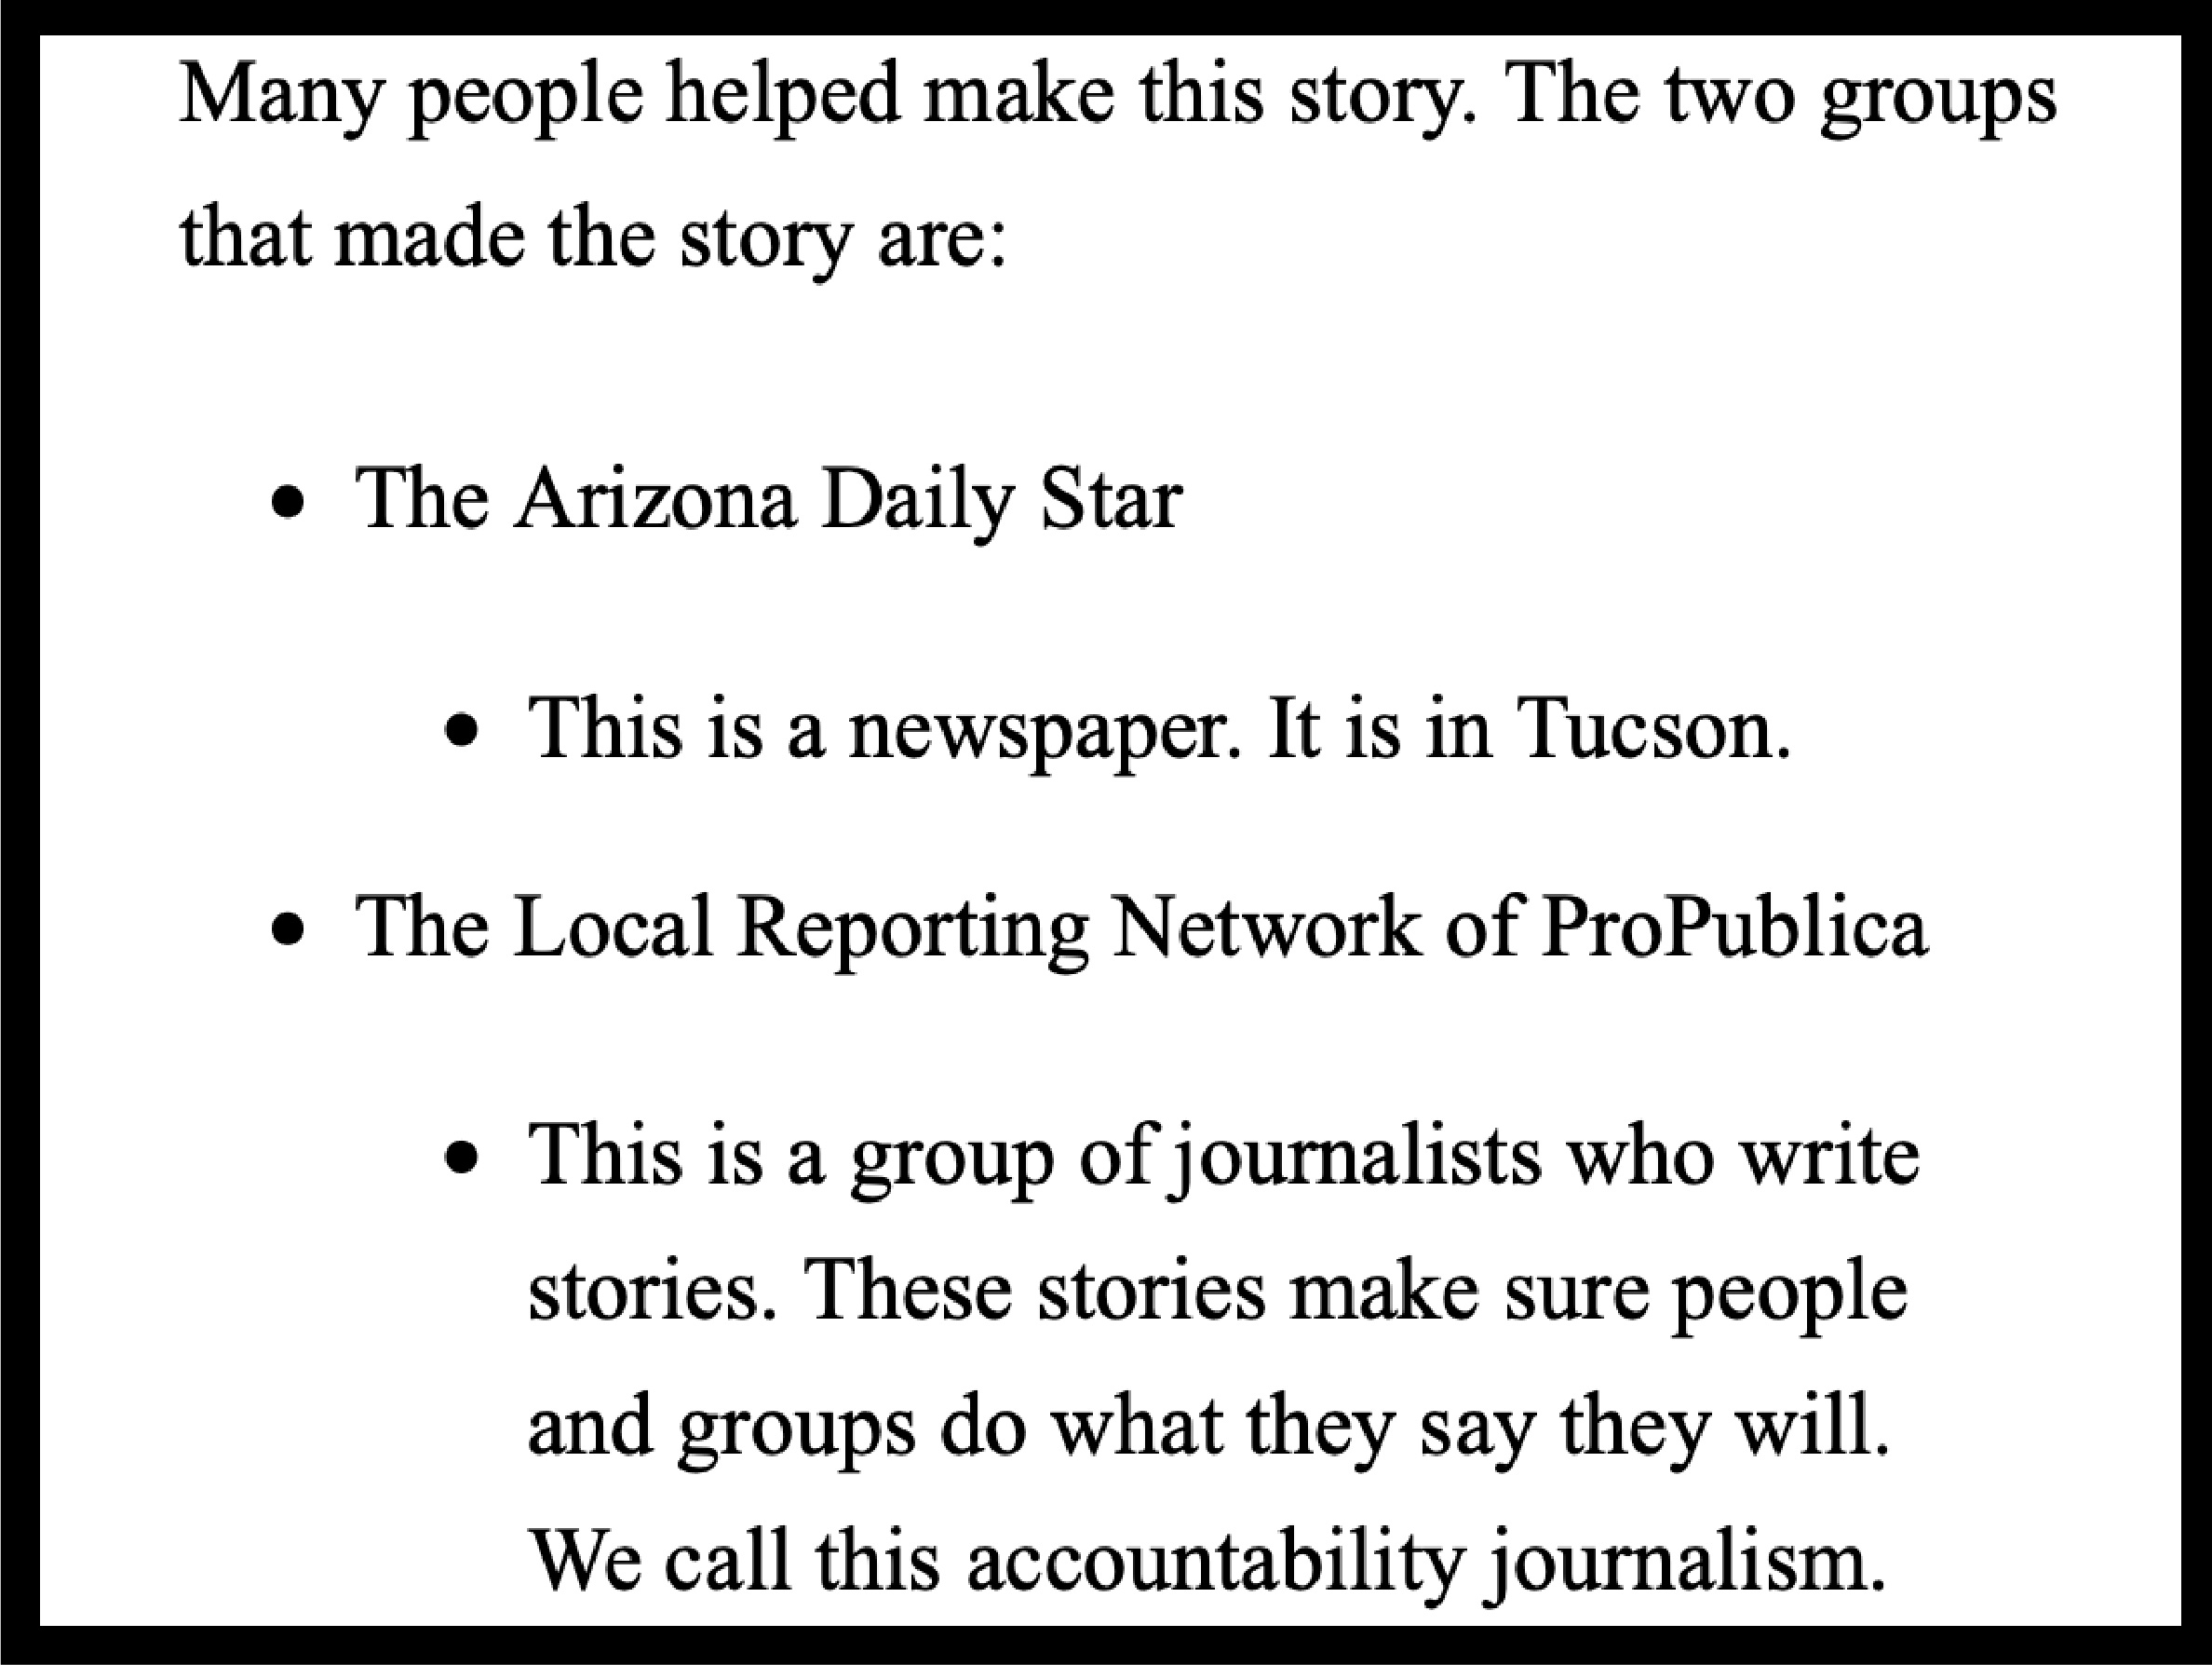 Screen shot of plain language translation describing who the Arizona Daily Star is and who the Local Reporting Network of ProPublica is.